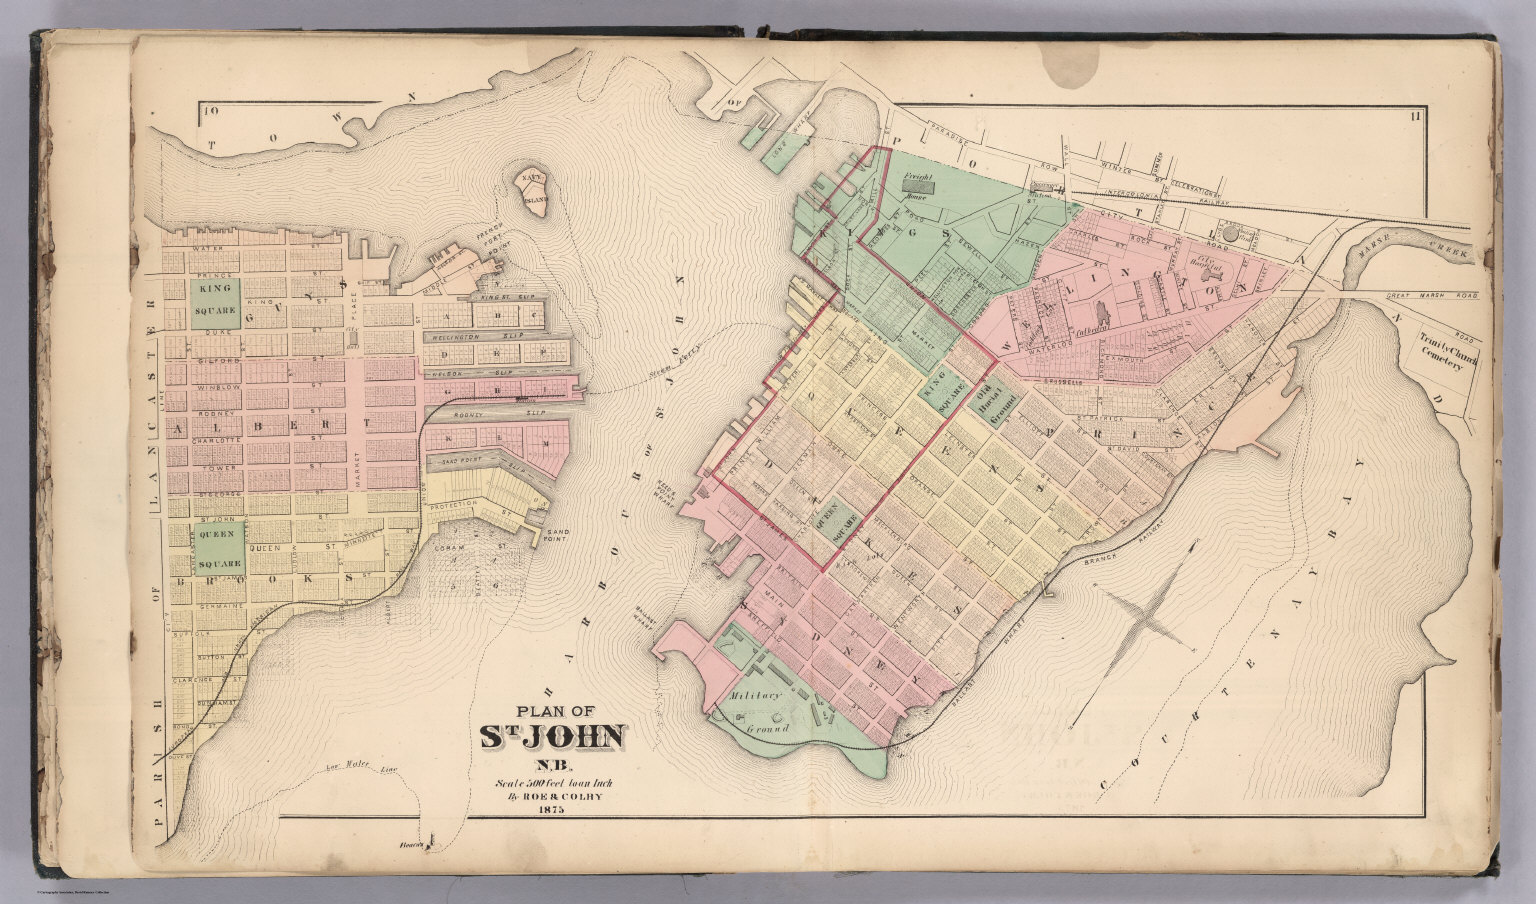 St John NB New Brunswick David Rumsey Historical Map Collection